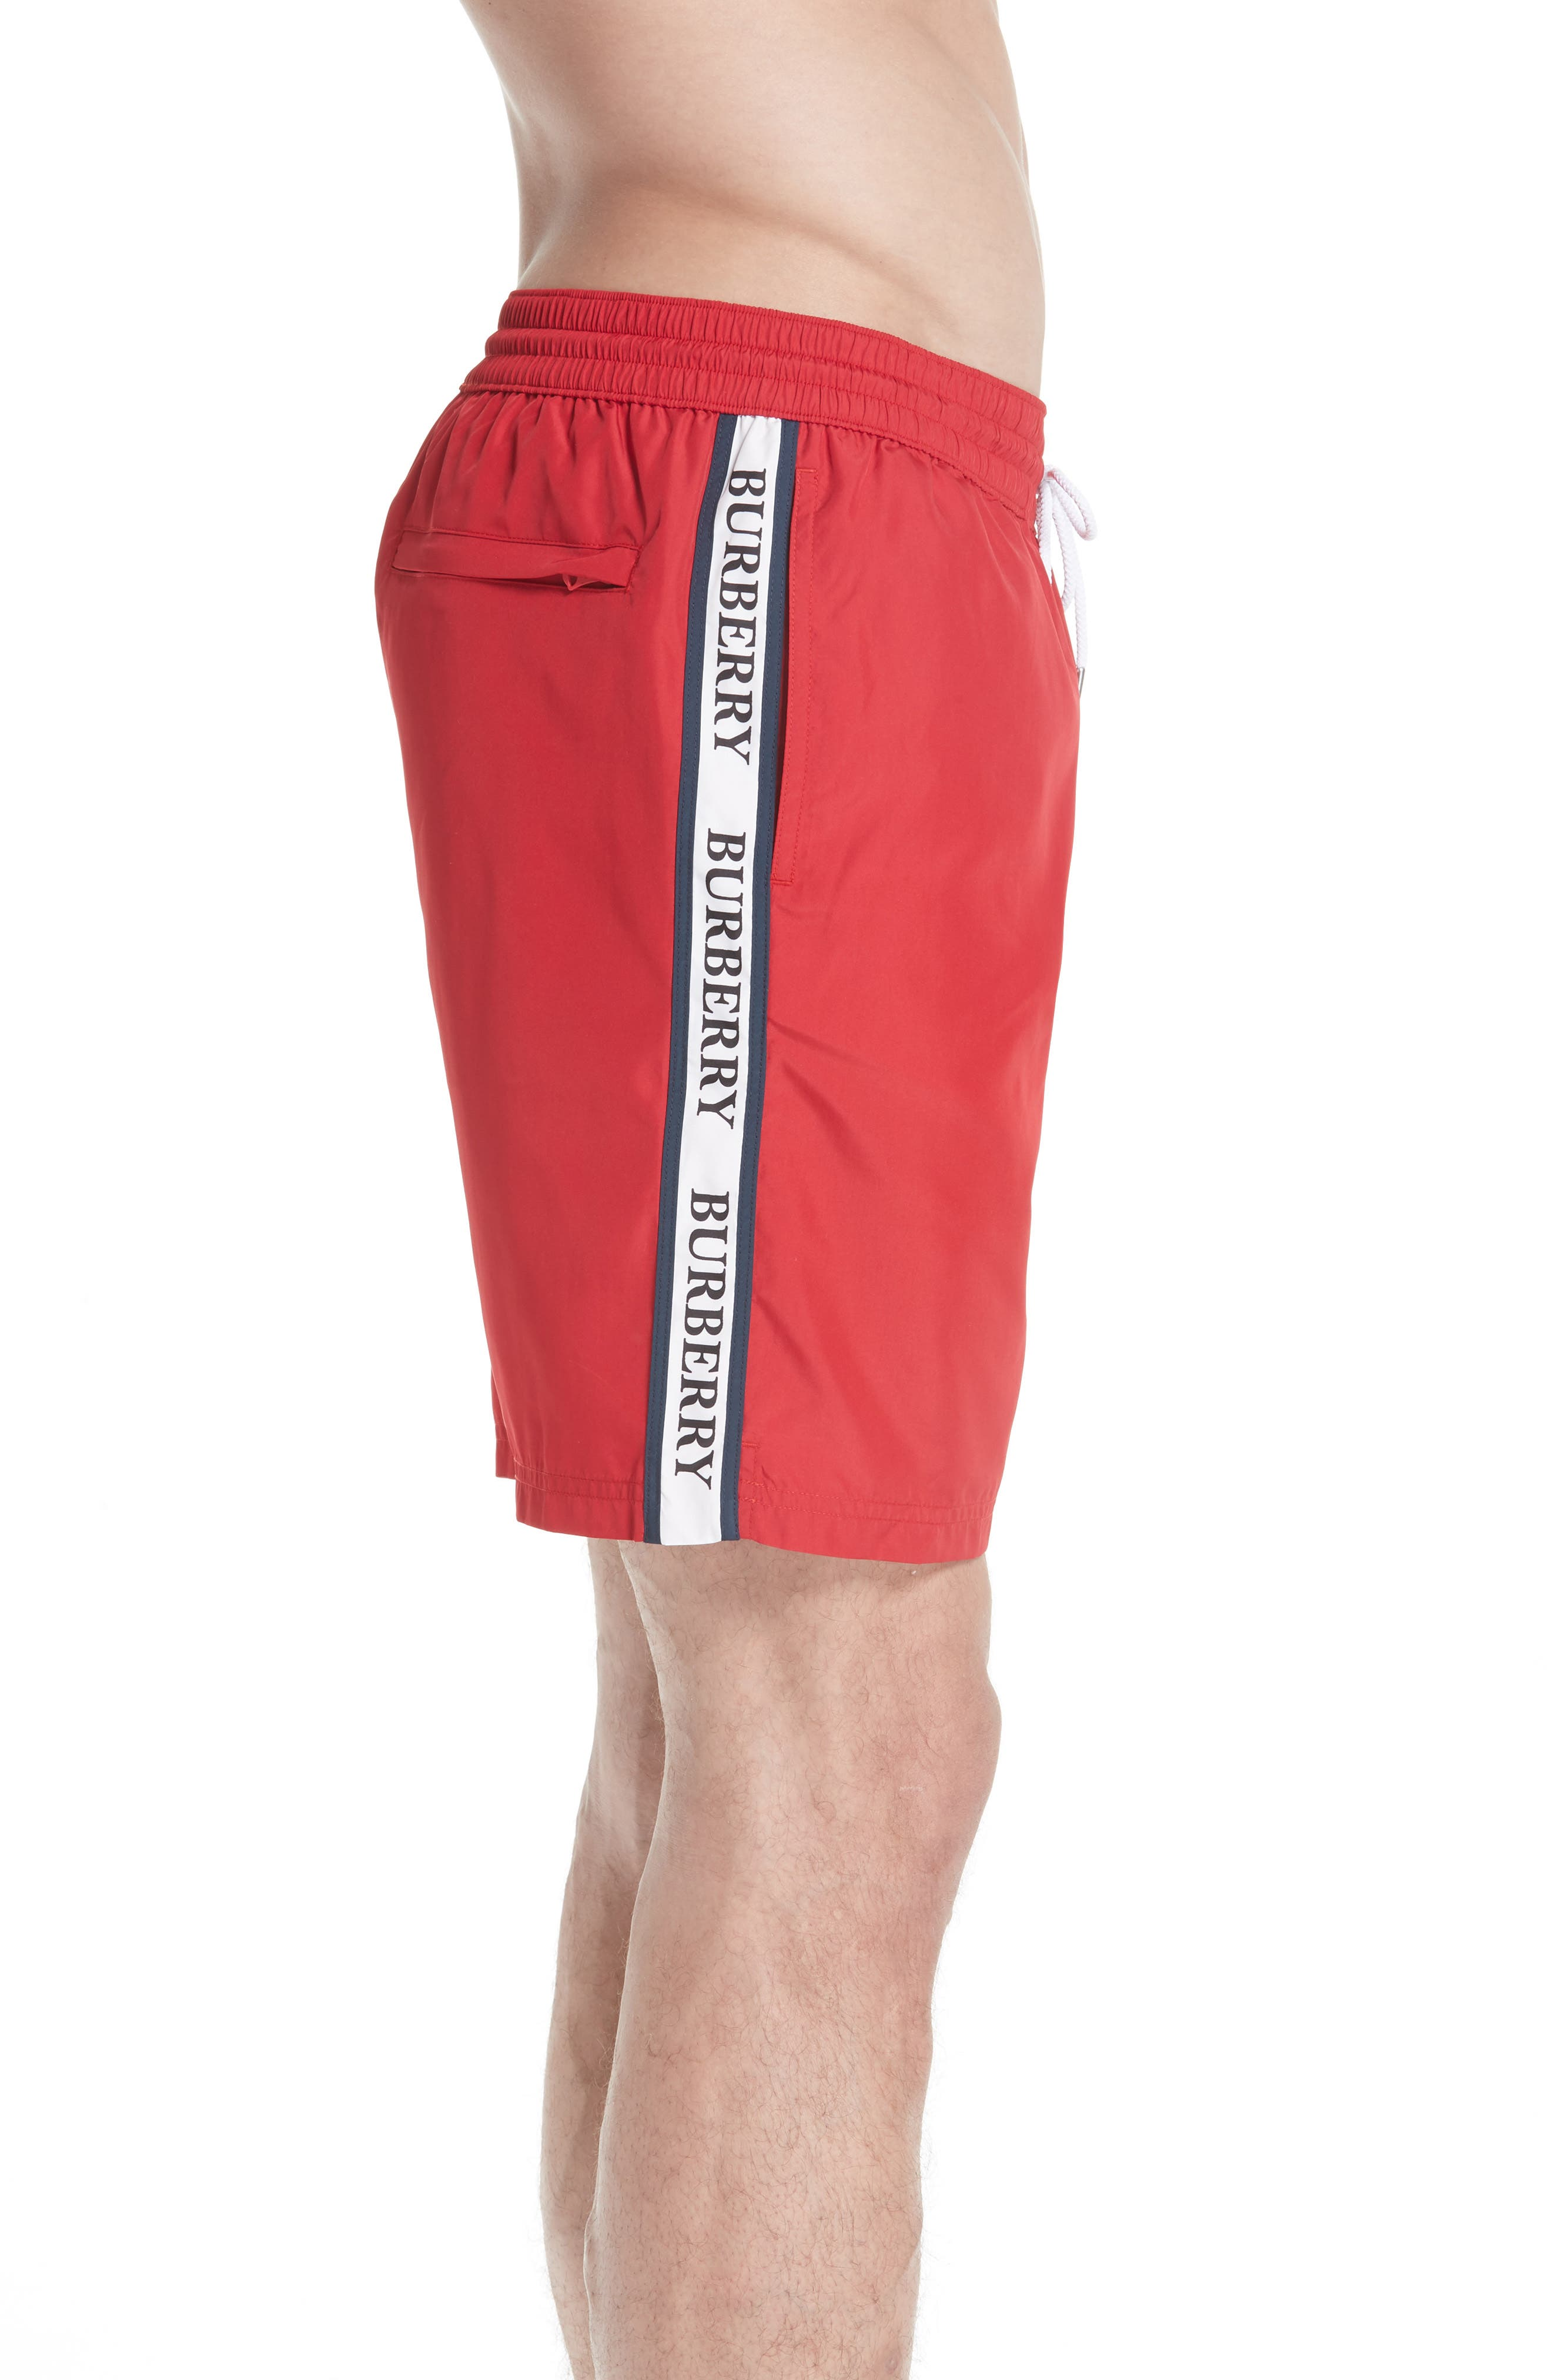 Guildes Swim Trunks,                             Alternate thumbnail 3, color,                             PARADE RED